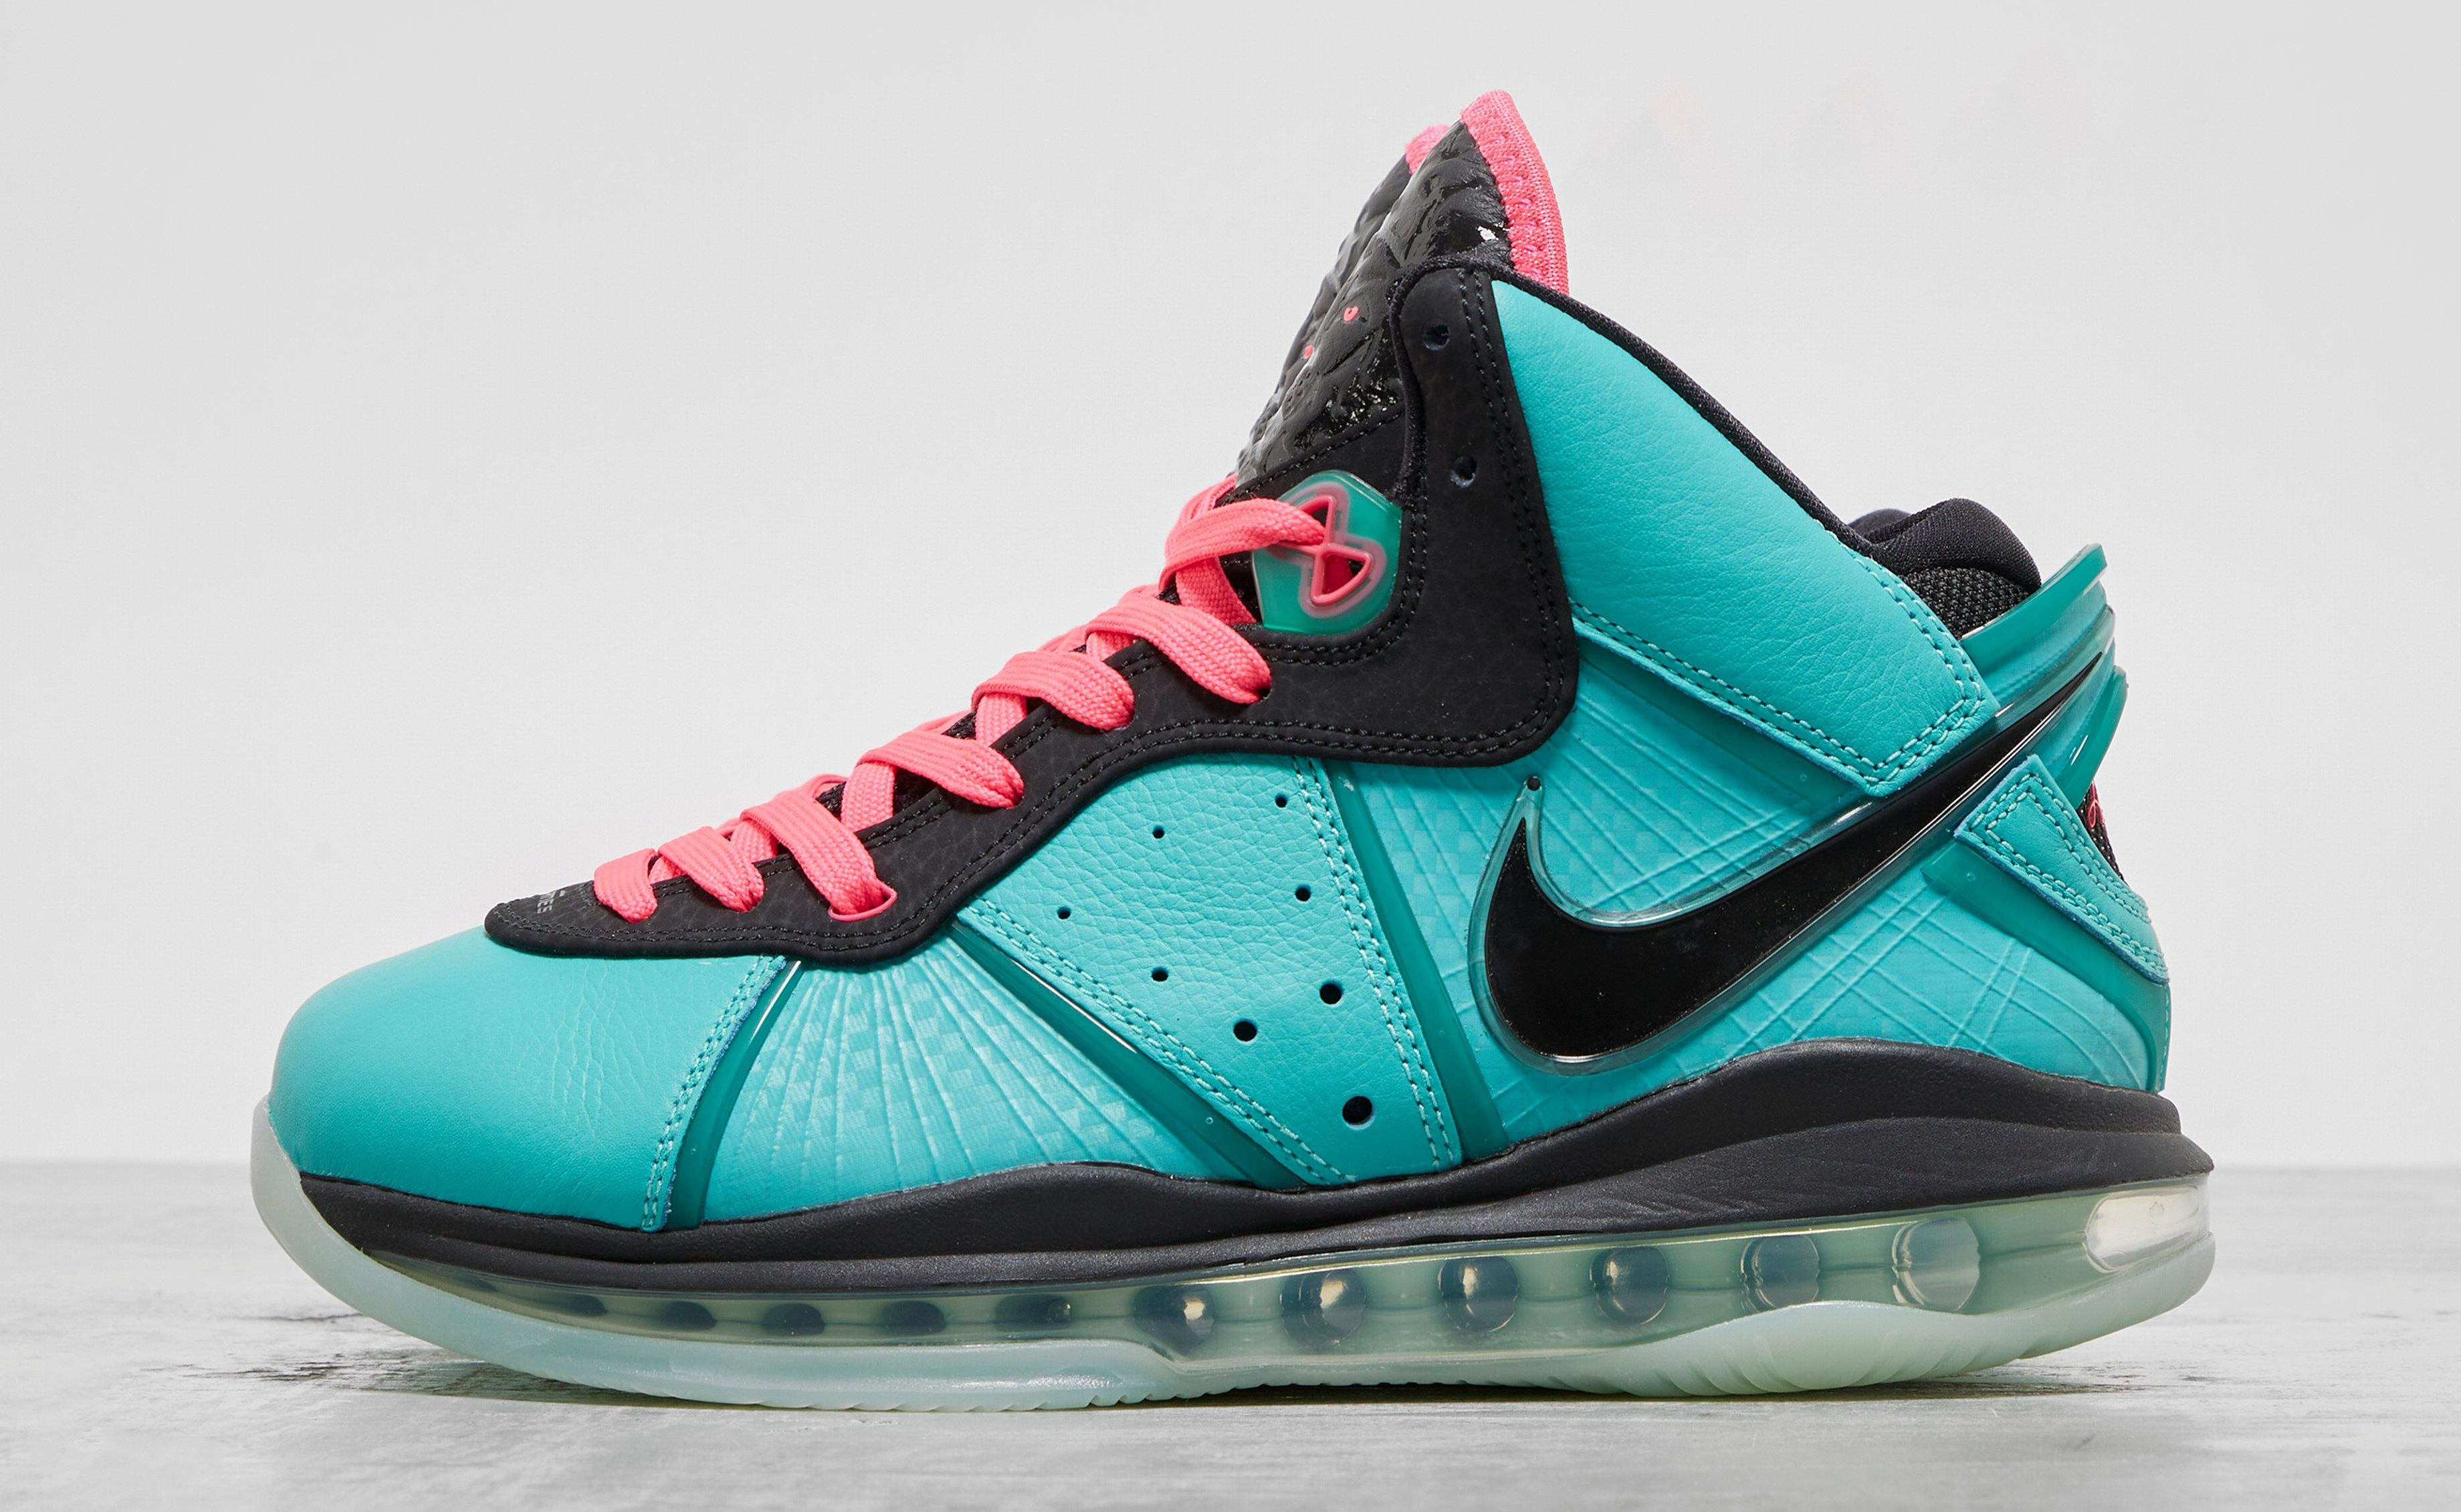 Nike LeBron 8 'South Beach' 2021 CZ0328-400 Lateral